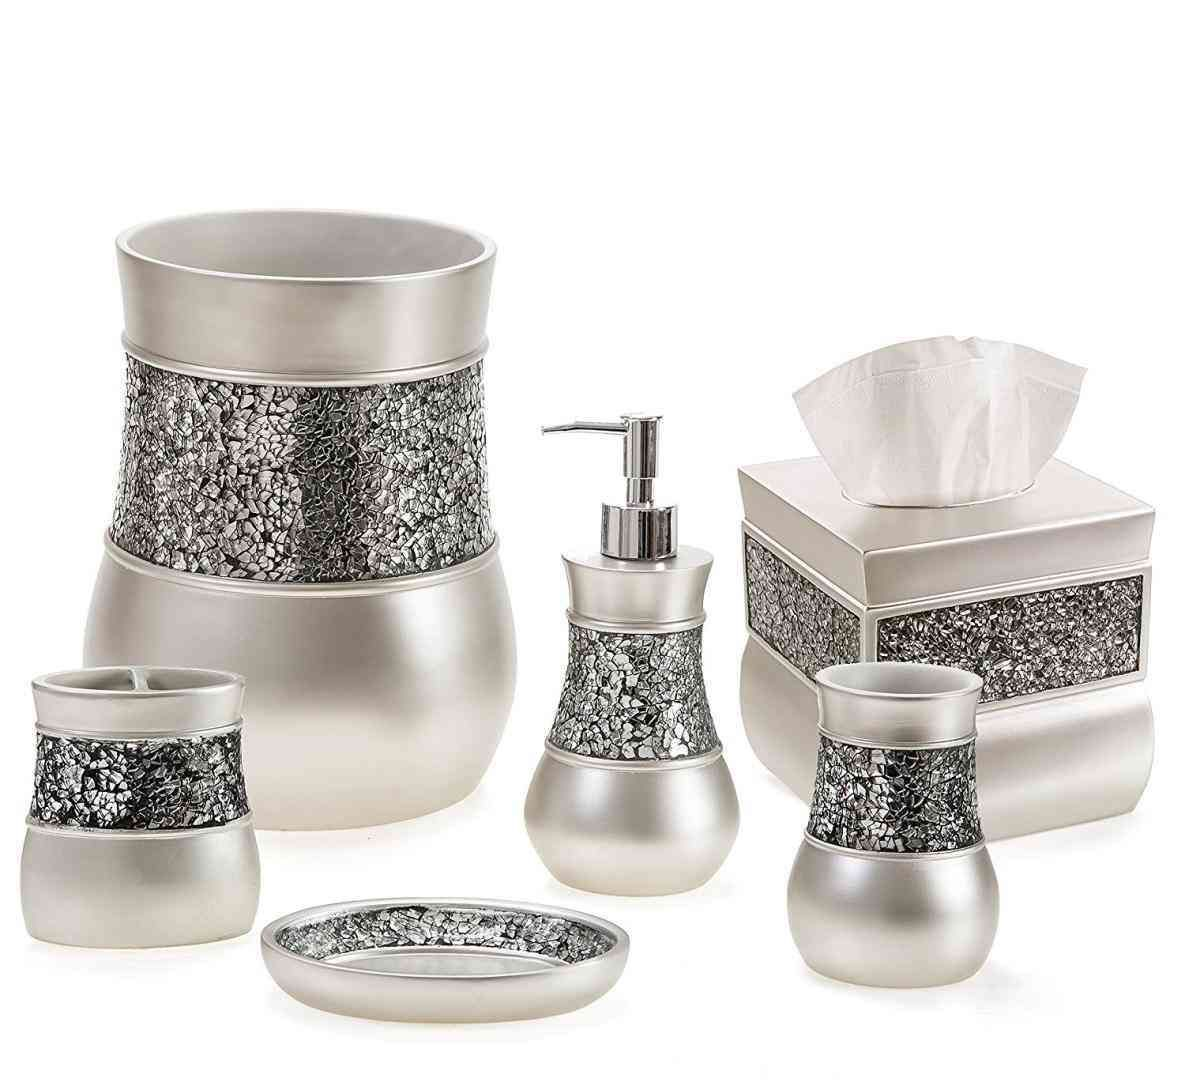 New Post Brushed Nickel Bathroom Set  Livingrooms  Pinterest Interesting Brushed Nickel Bathroom Accessories Decorating Design